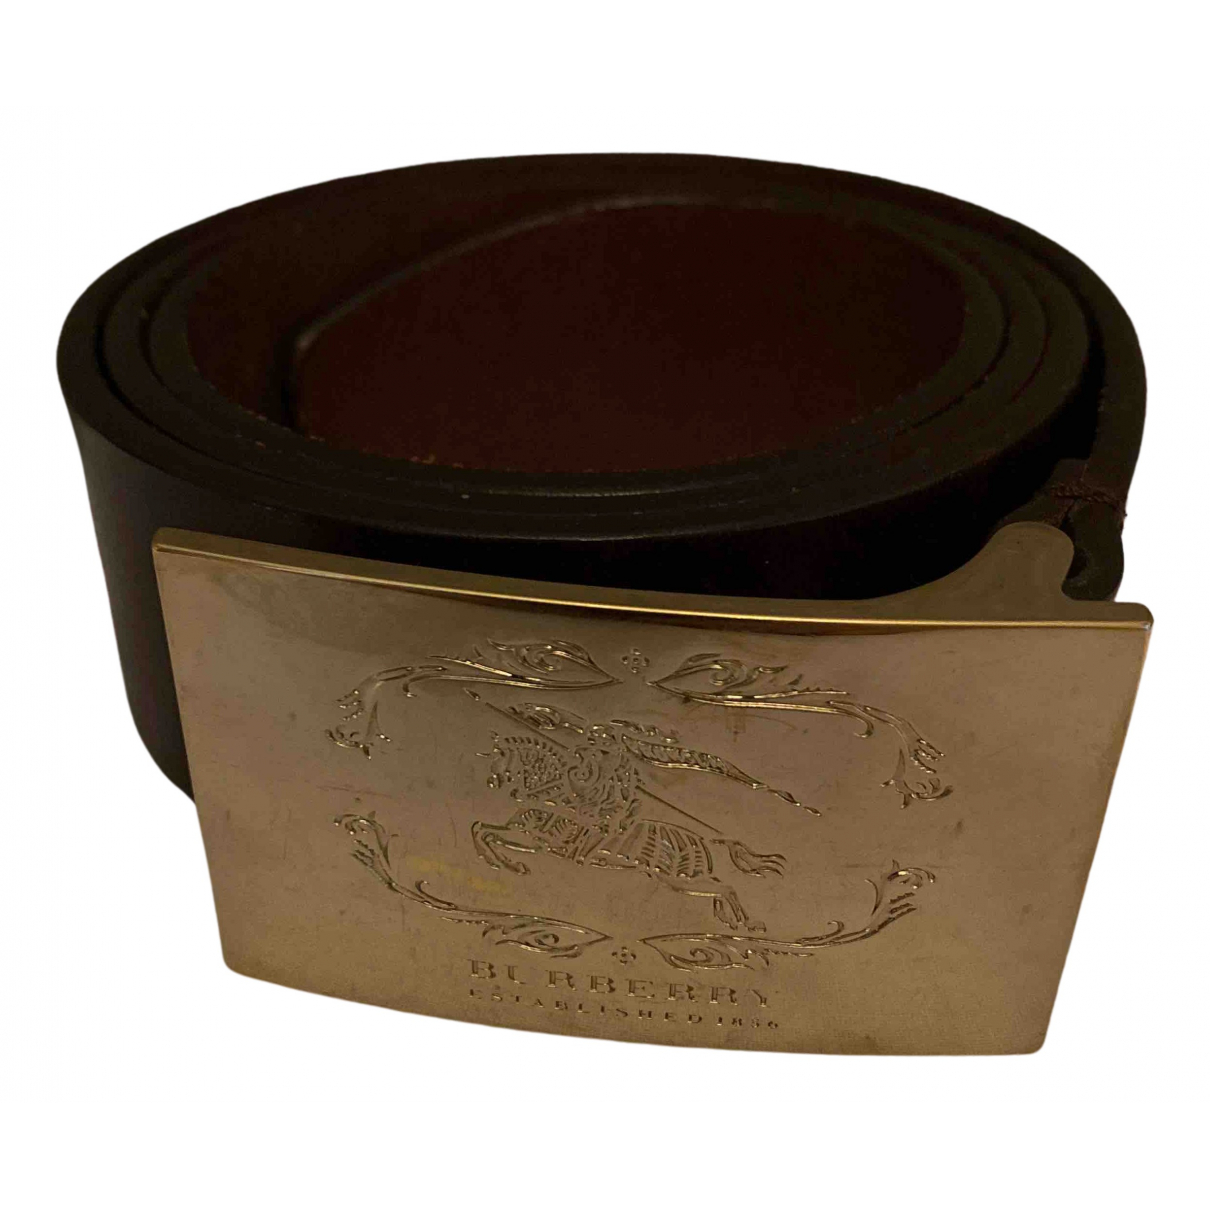 Burberry N Brown Leather belt for Women 90 cm